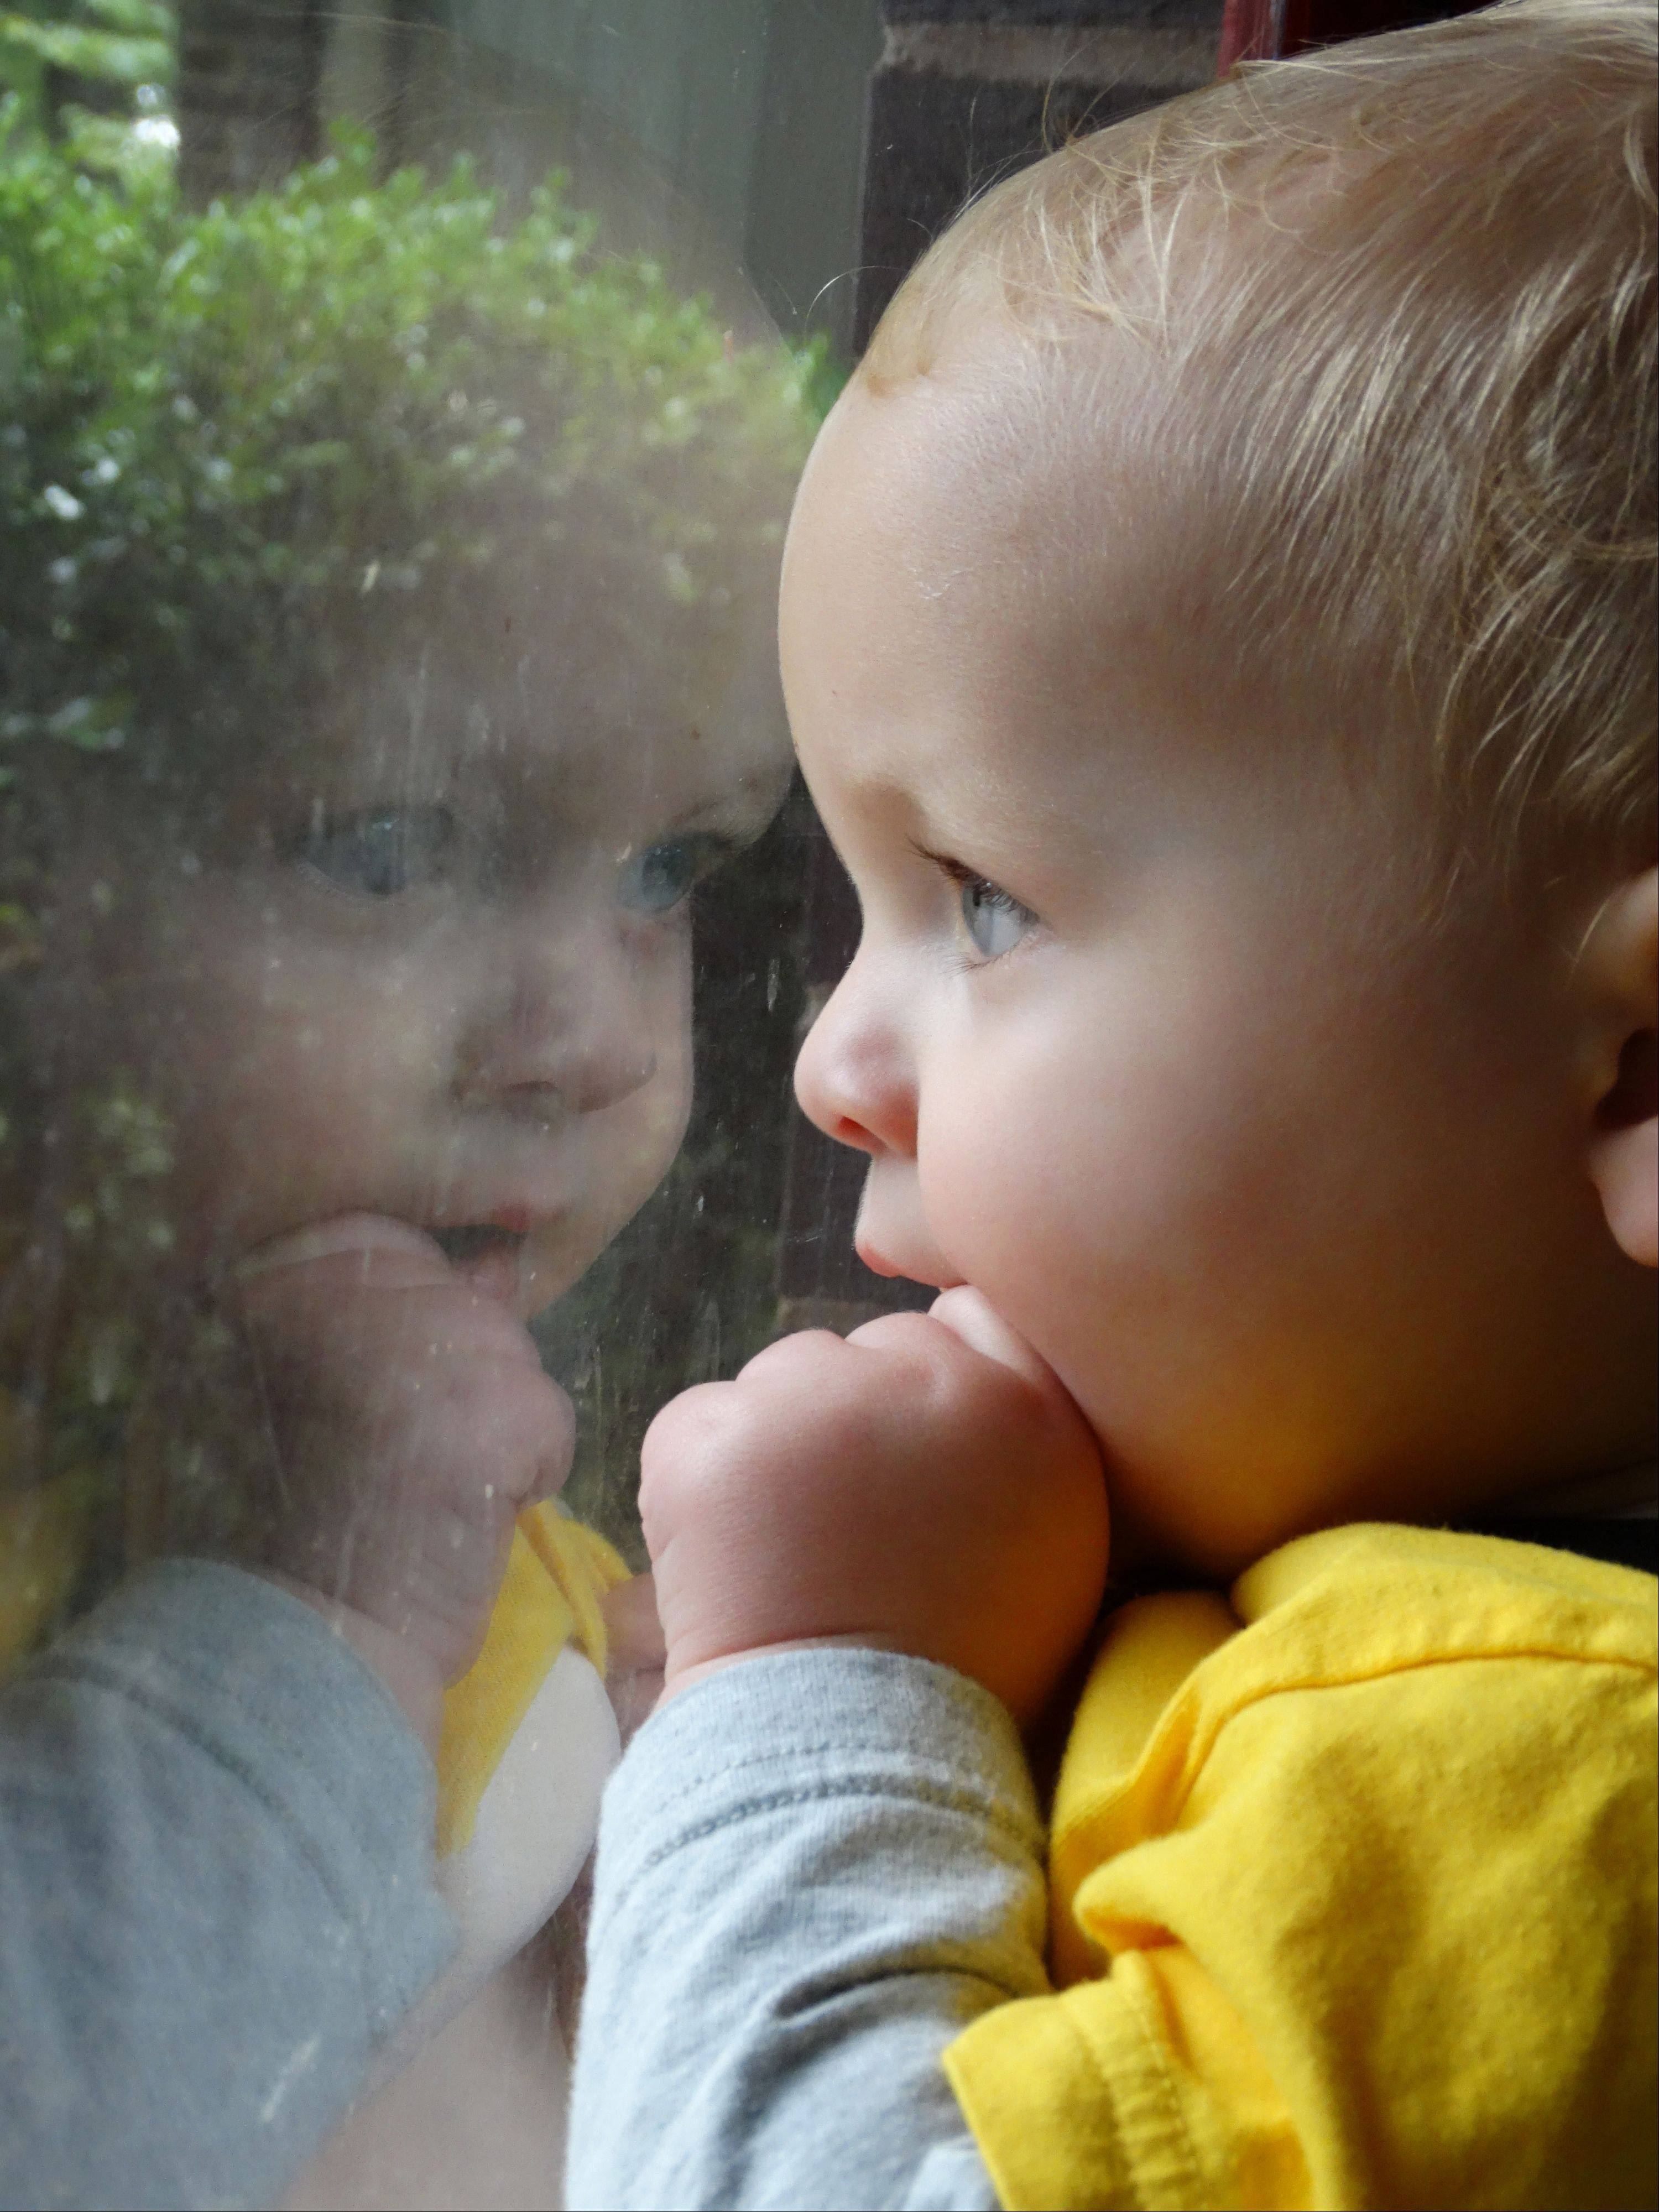 Fourteen-month-old Zachary Krandel watches dogs play in the front yard as his reflection is caught in the window.